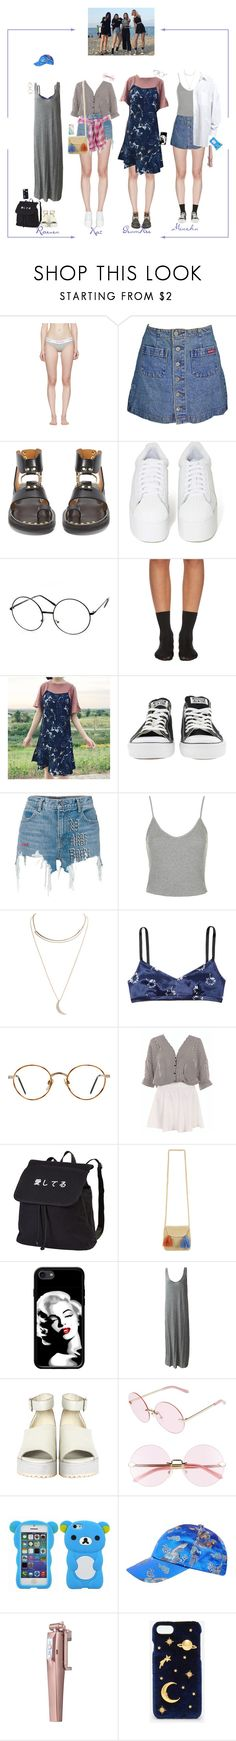 """""""S'nD """" Beach V Live """" w/ PTX"""" by purrfectas ❤ liked on Polyvore featuring Calvin Klein Underwear, Isabel Marant, Jeffrey Campbell, Wolford, Converse, Alexander Wang, Topshop, Wet Seal, Marc Jacobs and GlassesUSA"""